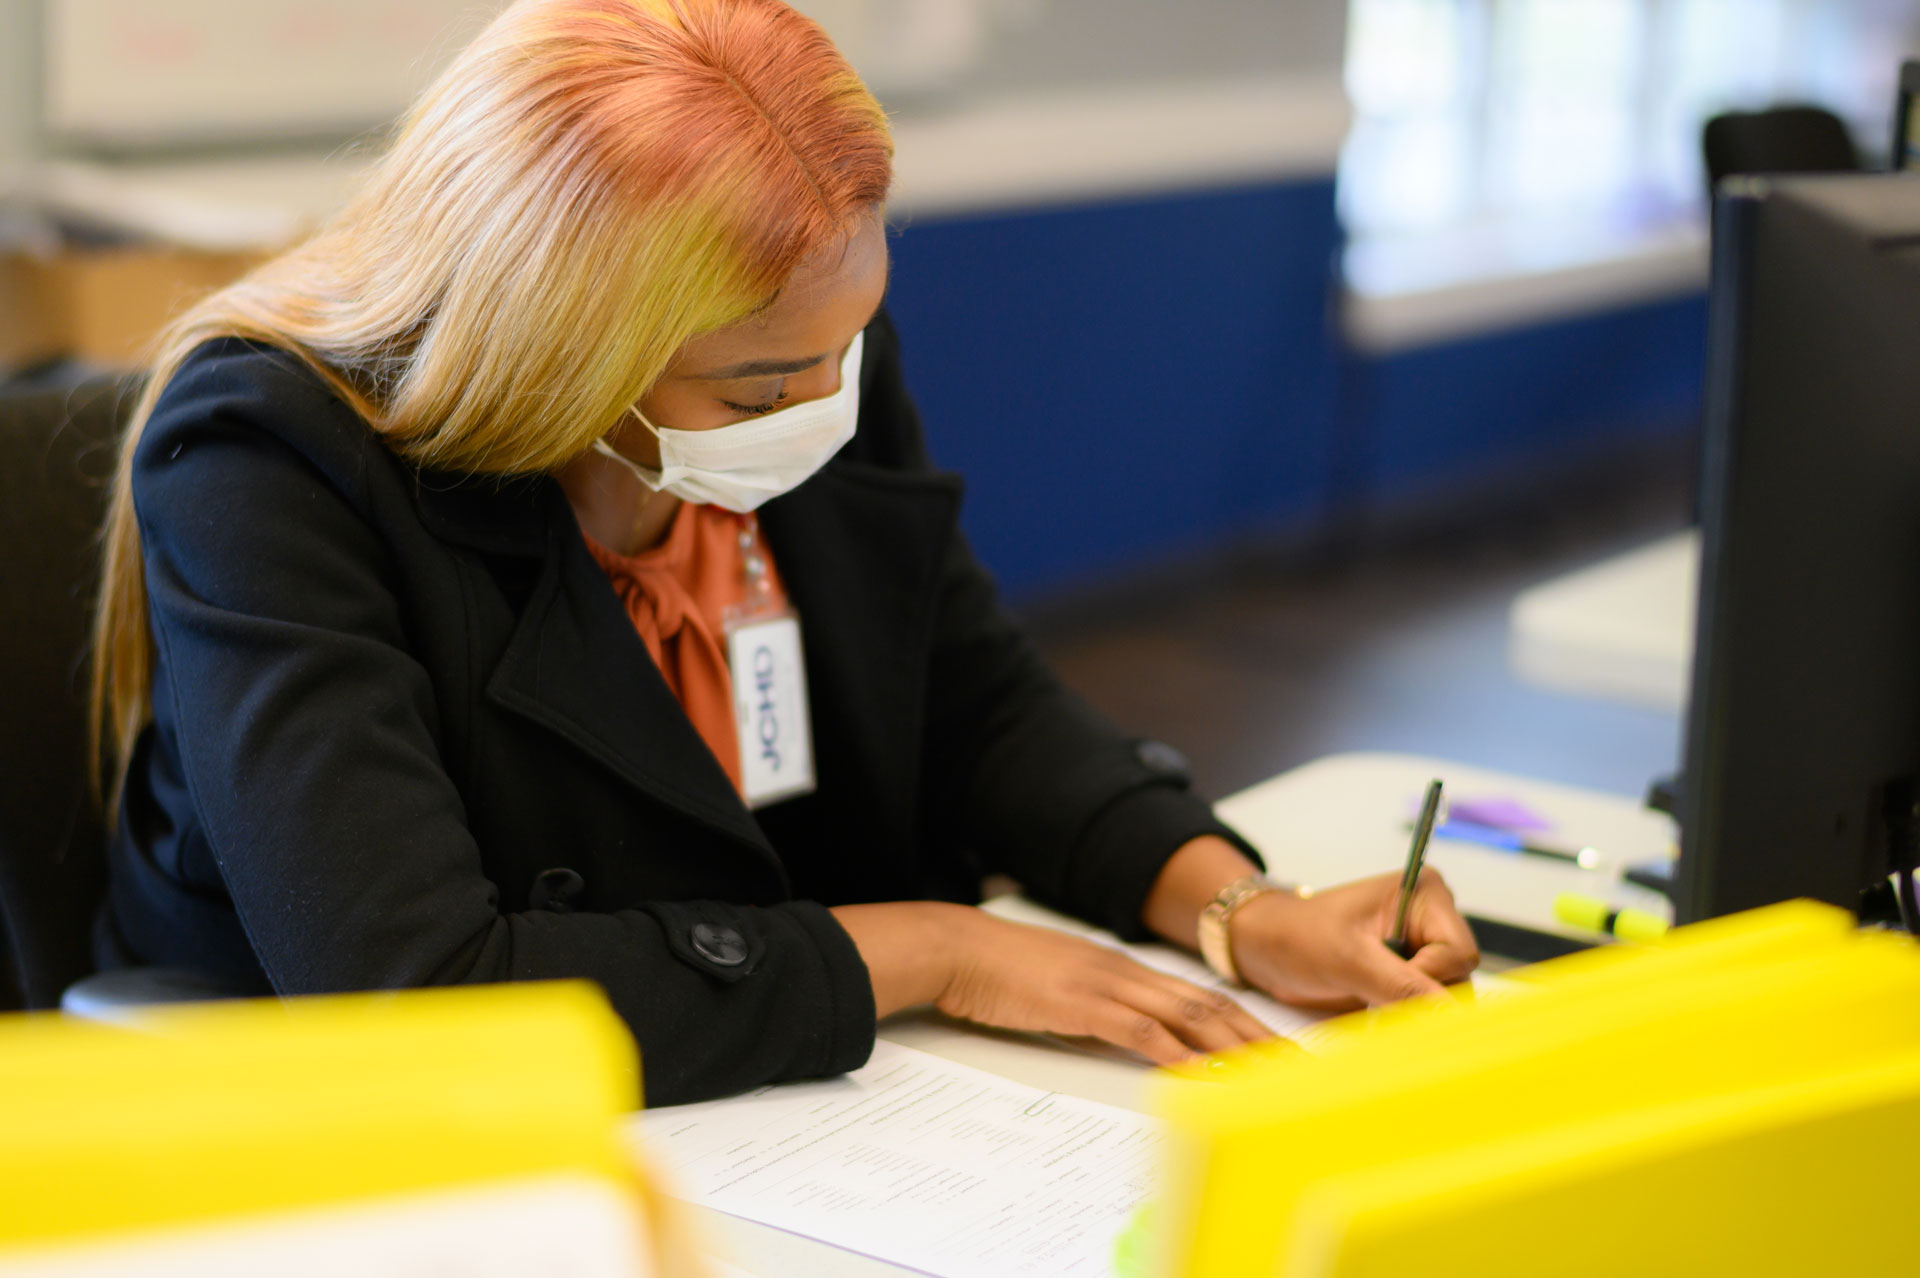 Ogechi, dressed in a black blazer and orange blouse, works at a desk at the UK HealthCare Sports Medicine clinic. Her hair is long, straight, and blonde.